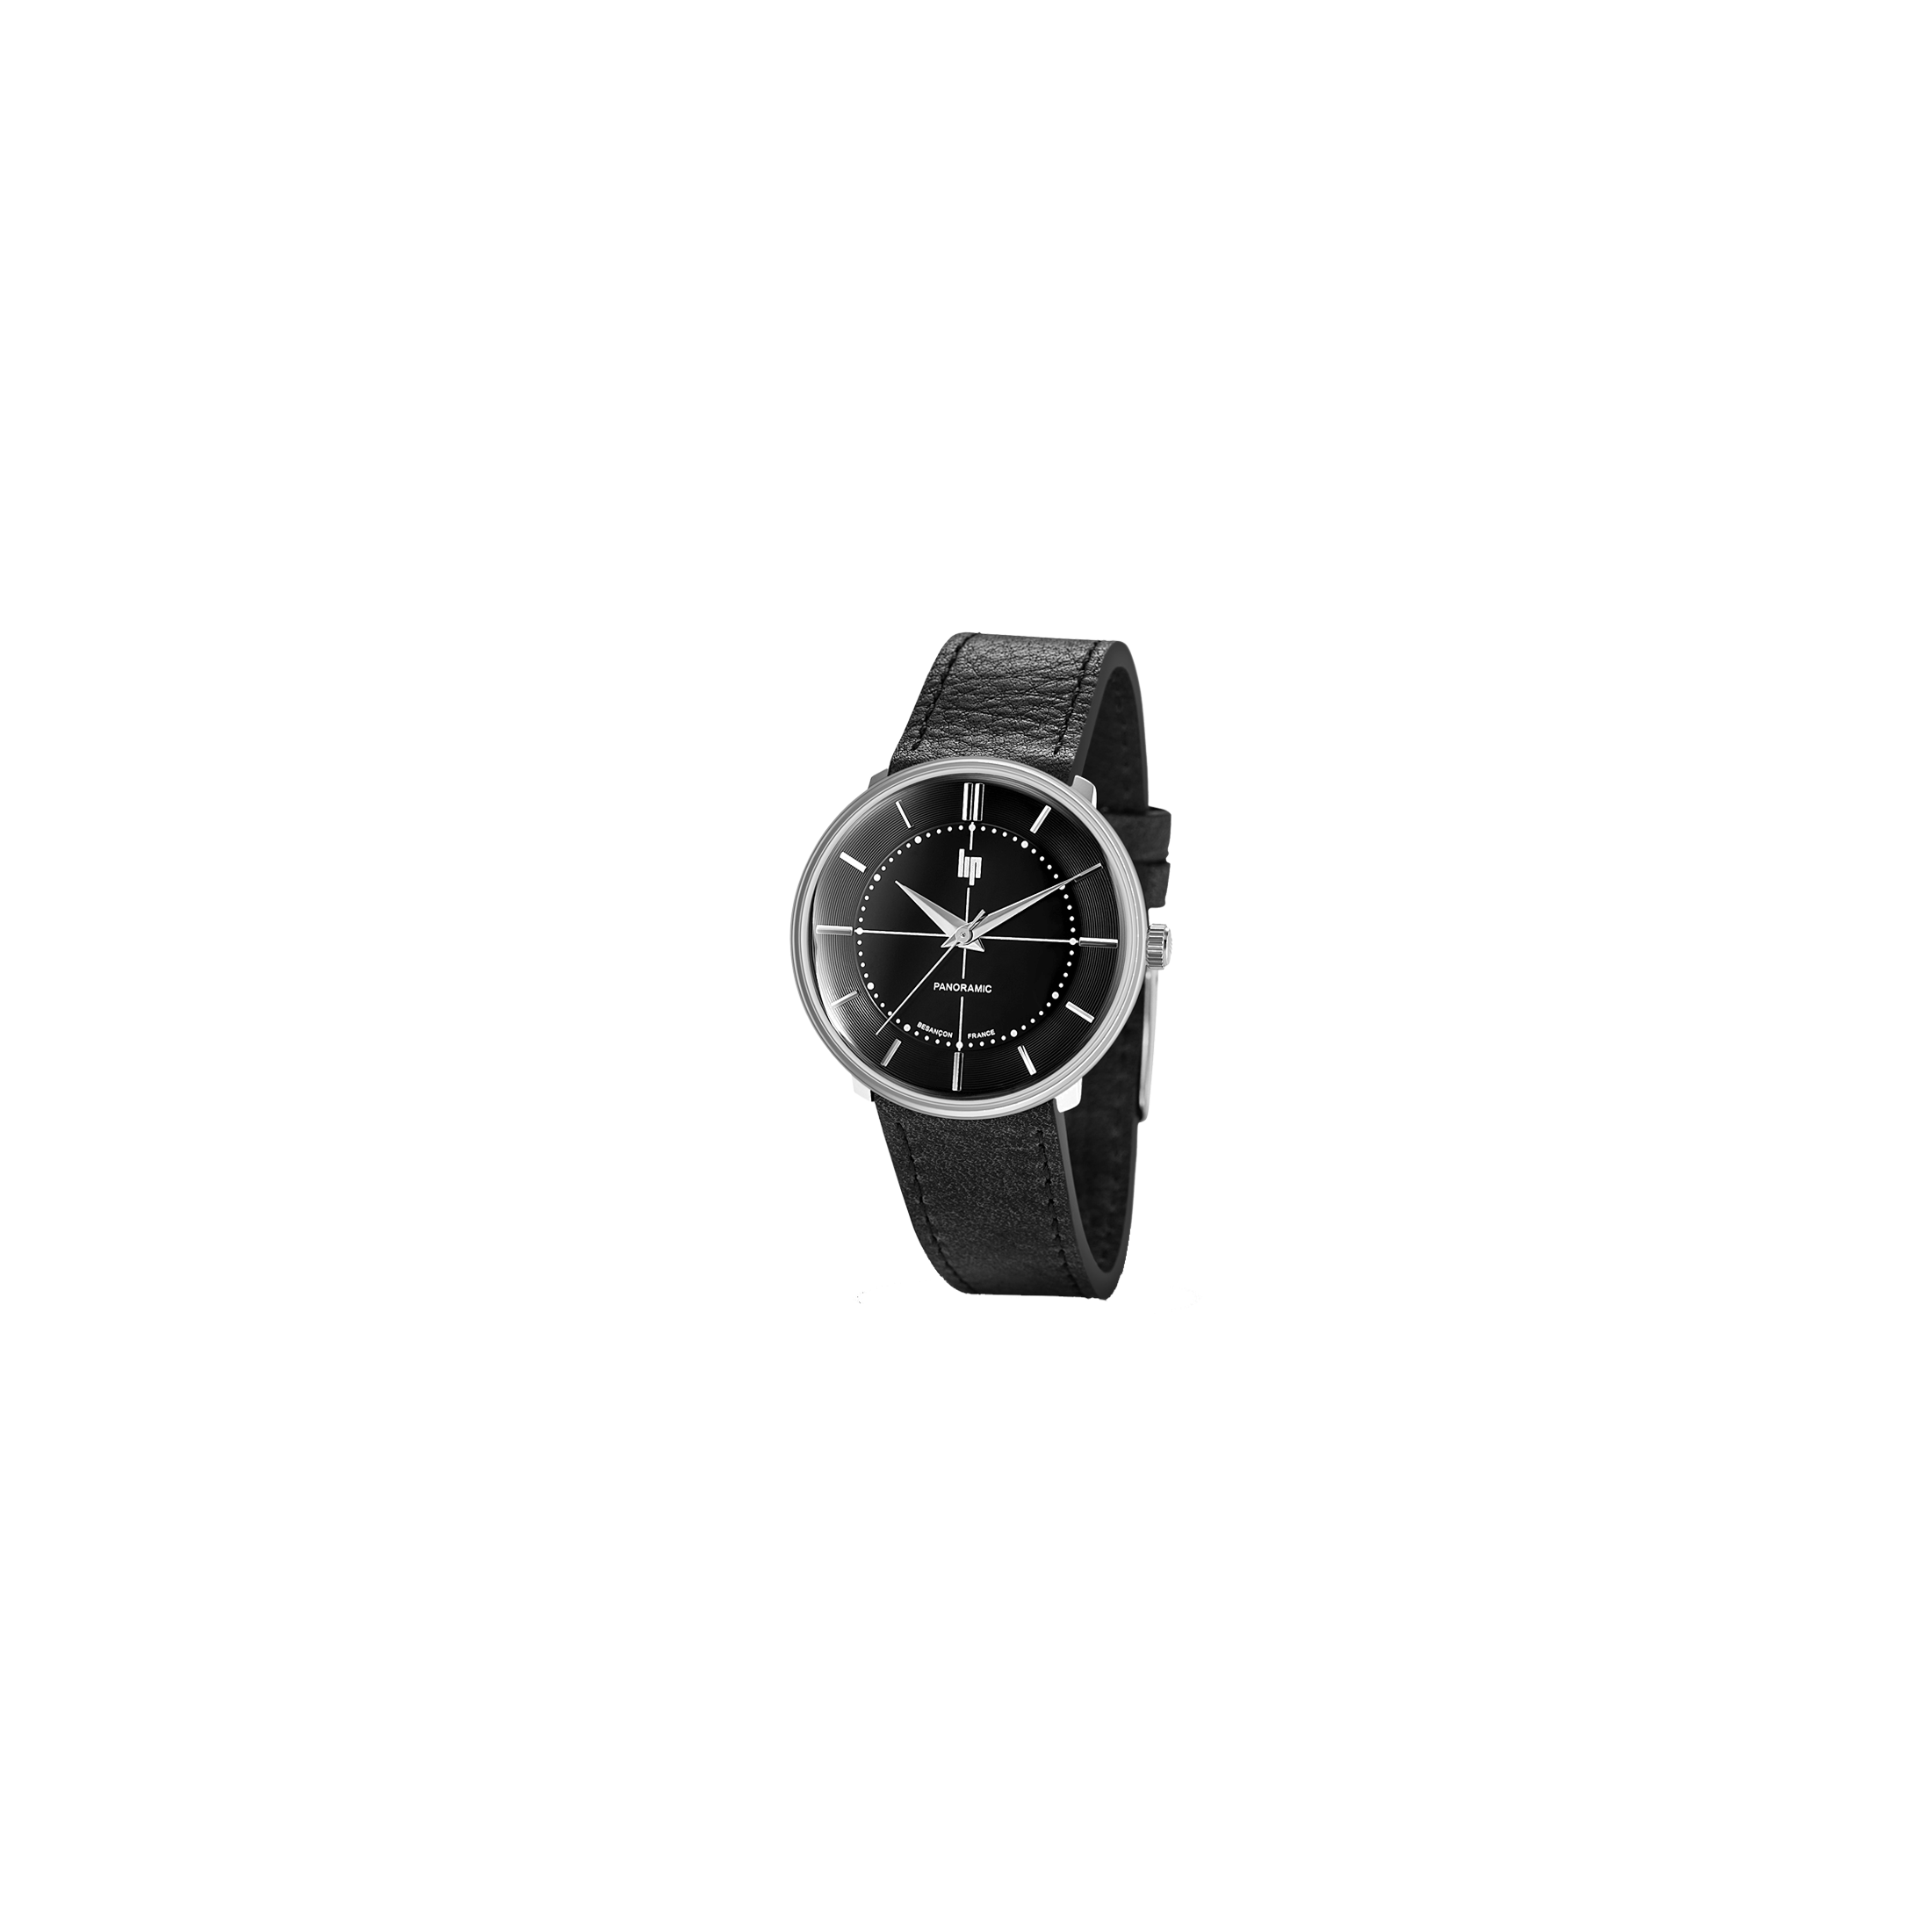 Montre Lip Panoramic quartz cadran noir bracelet cuir noir 34 mm